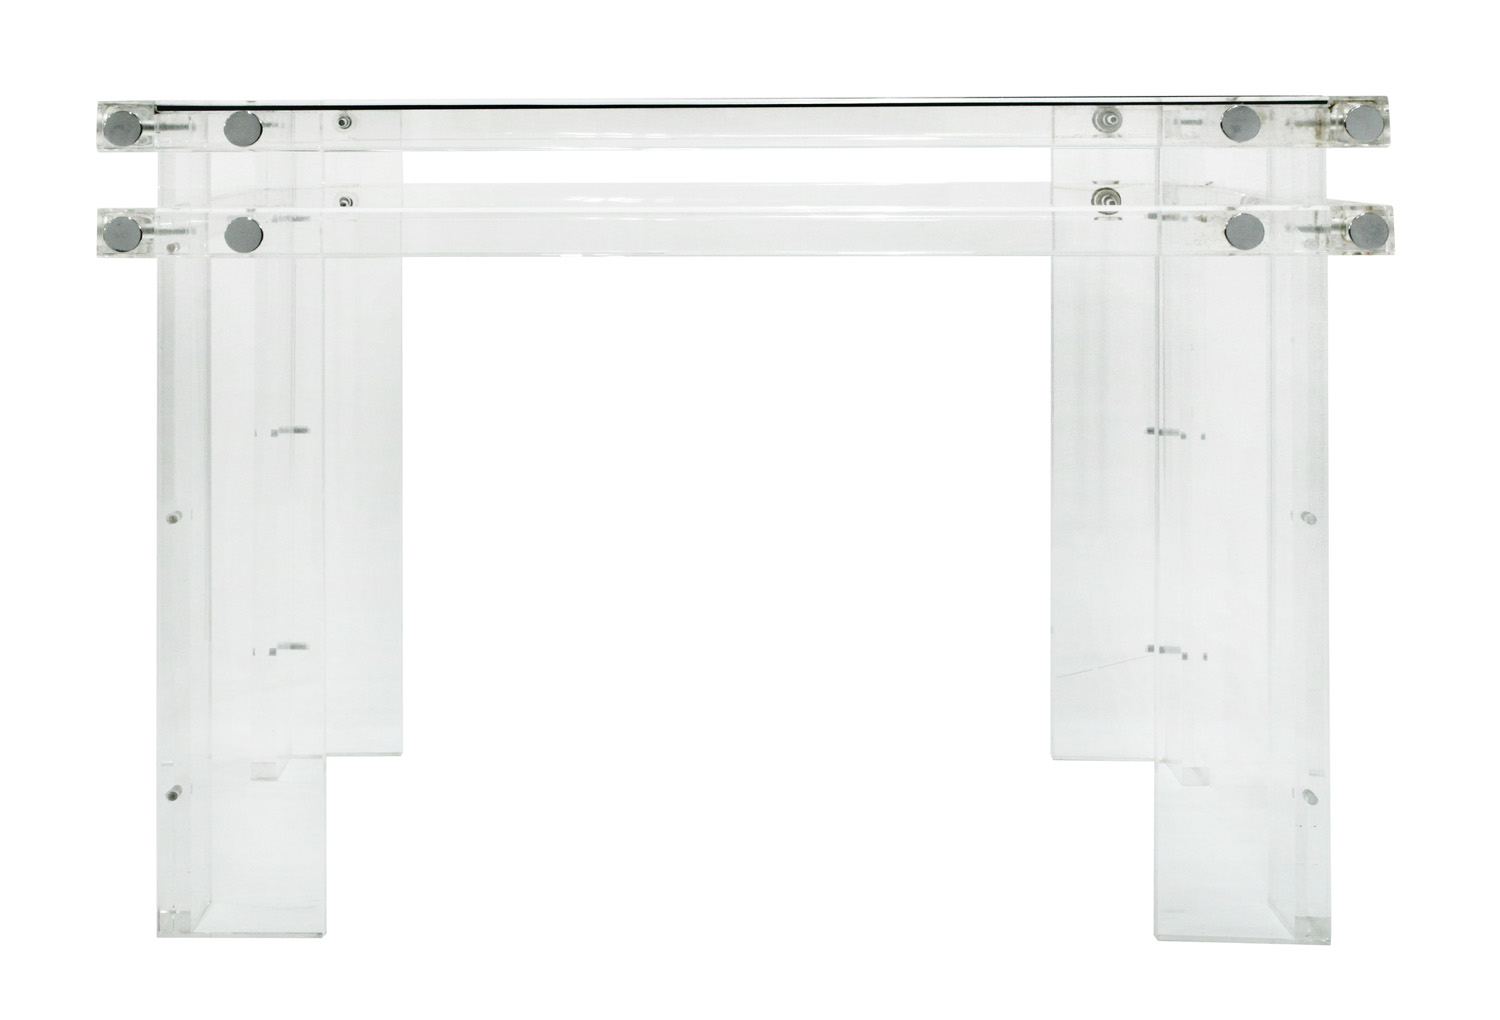 70s 35 square thick lucite+glass endtable143 detail3 hires.jpg